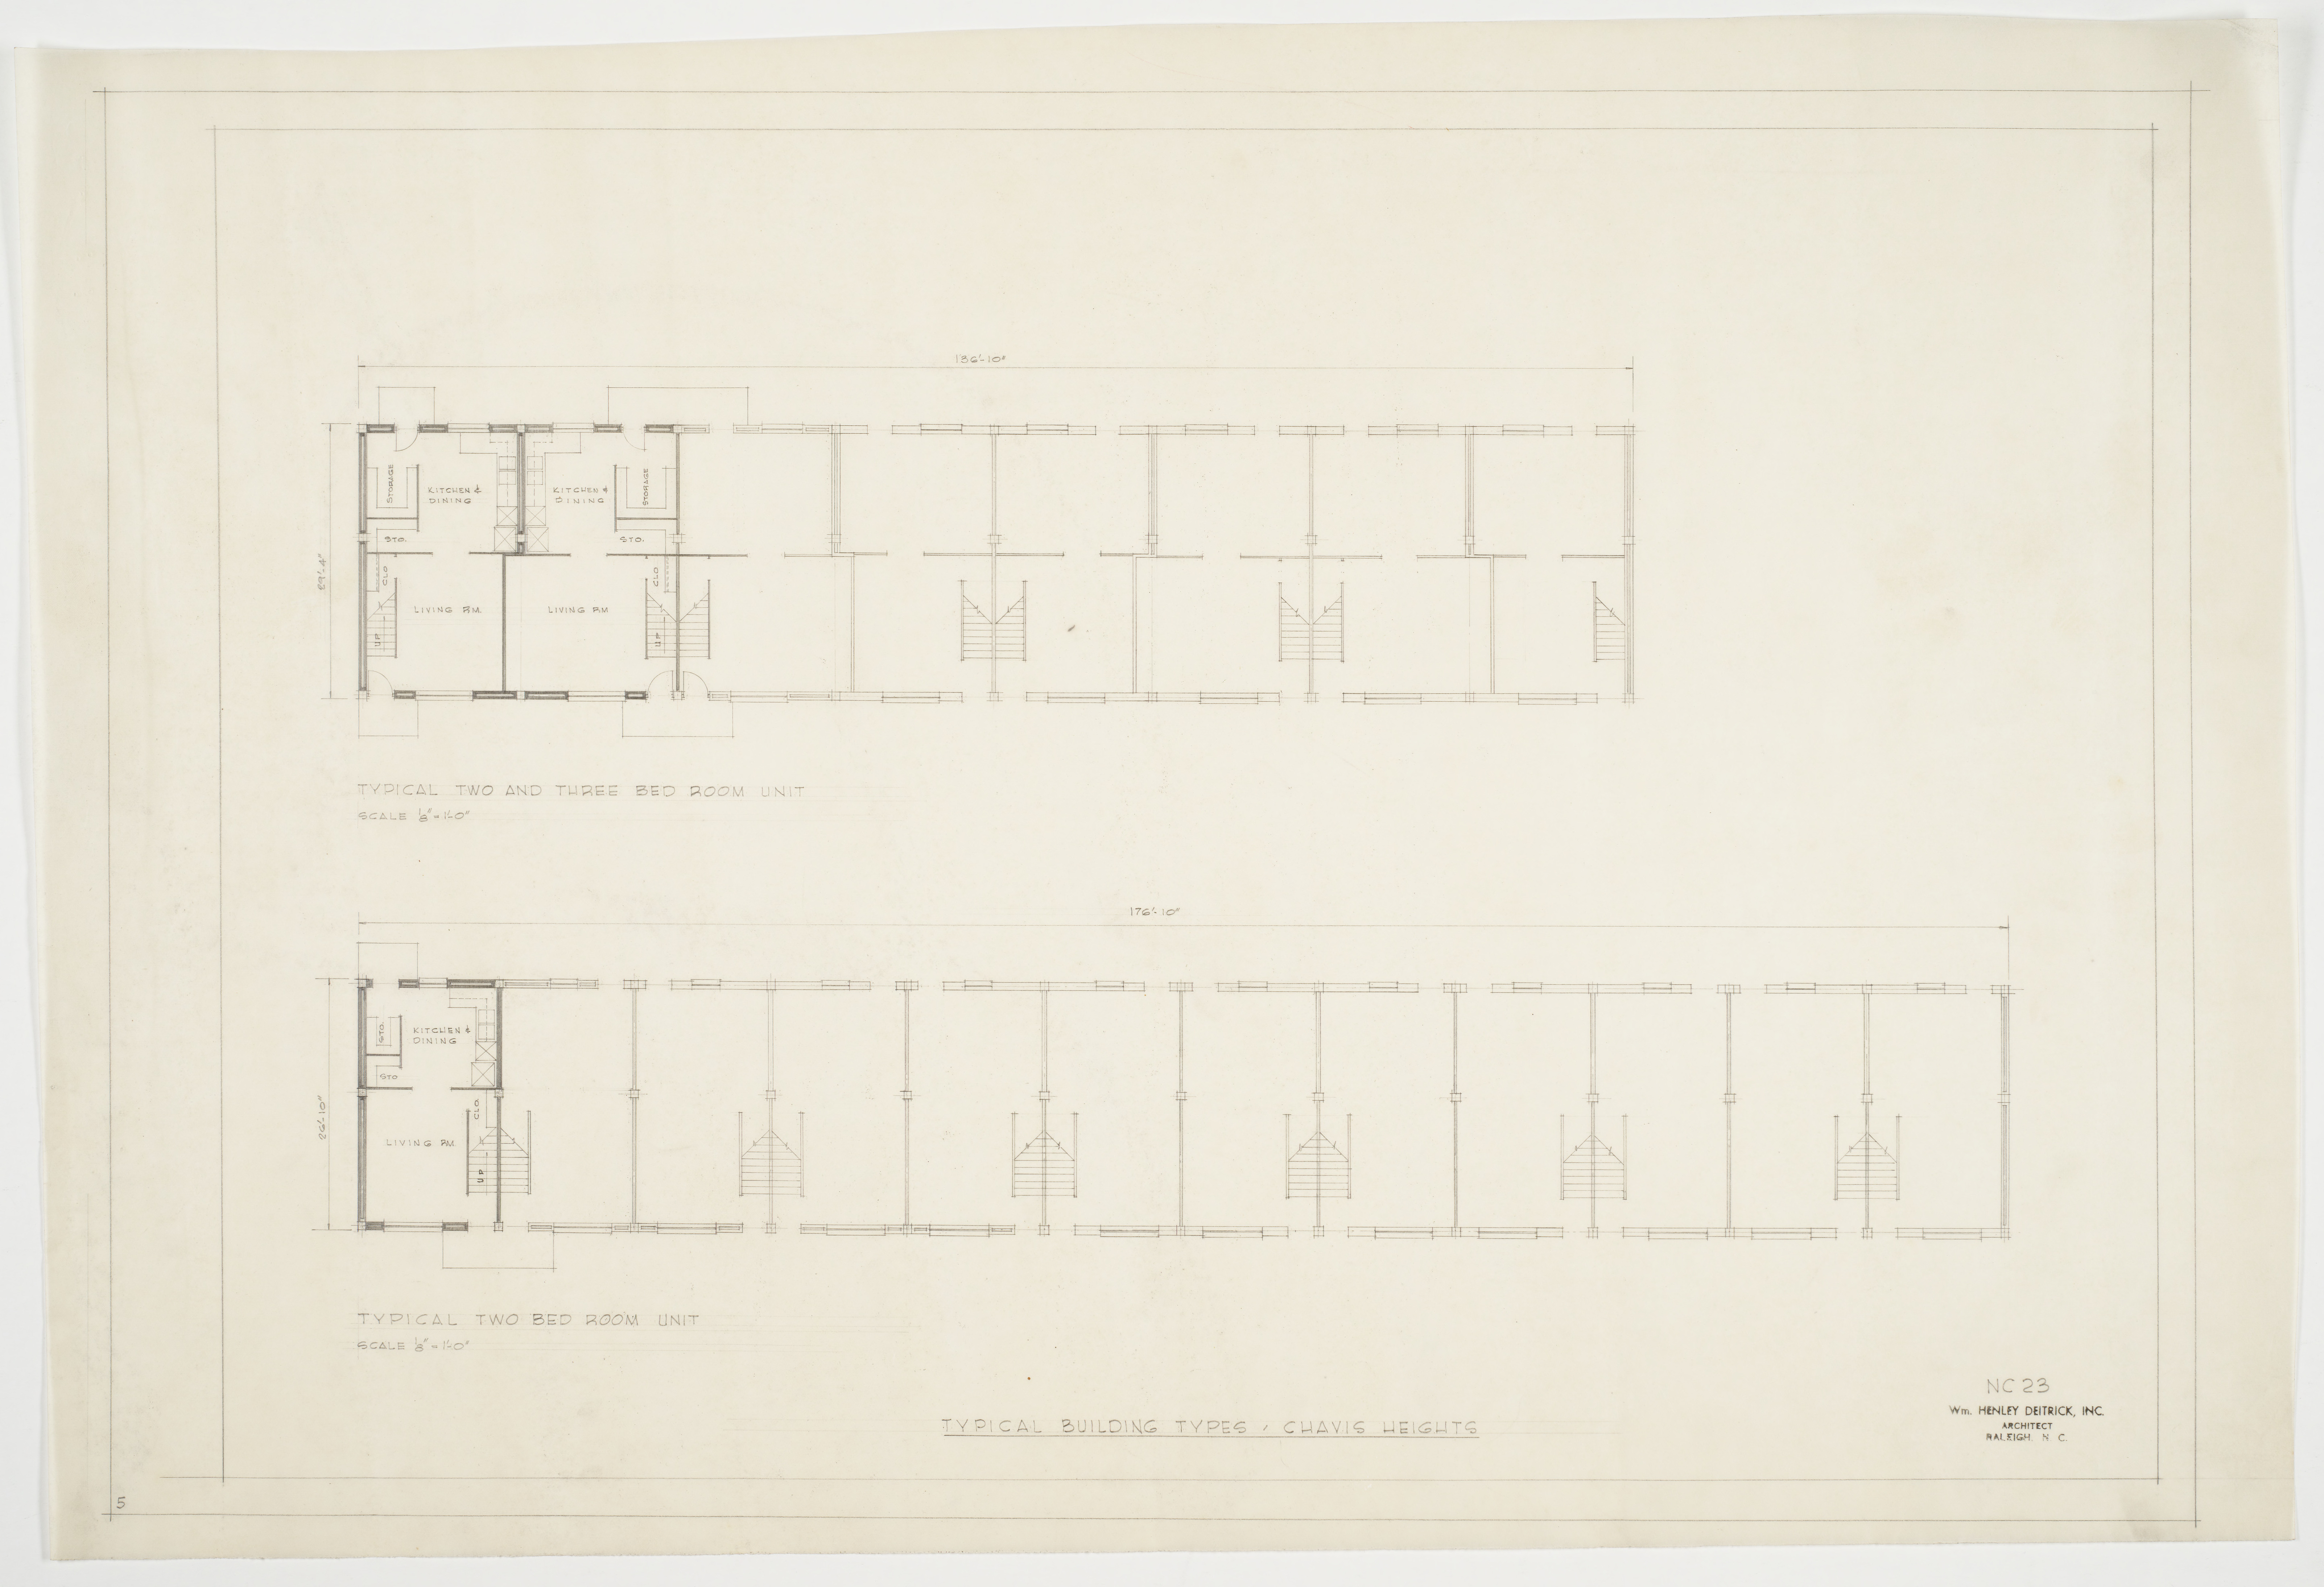 Typical two and three bedroom unit floor plans chavis for 3 bedroom unit floor plans